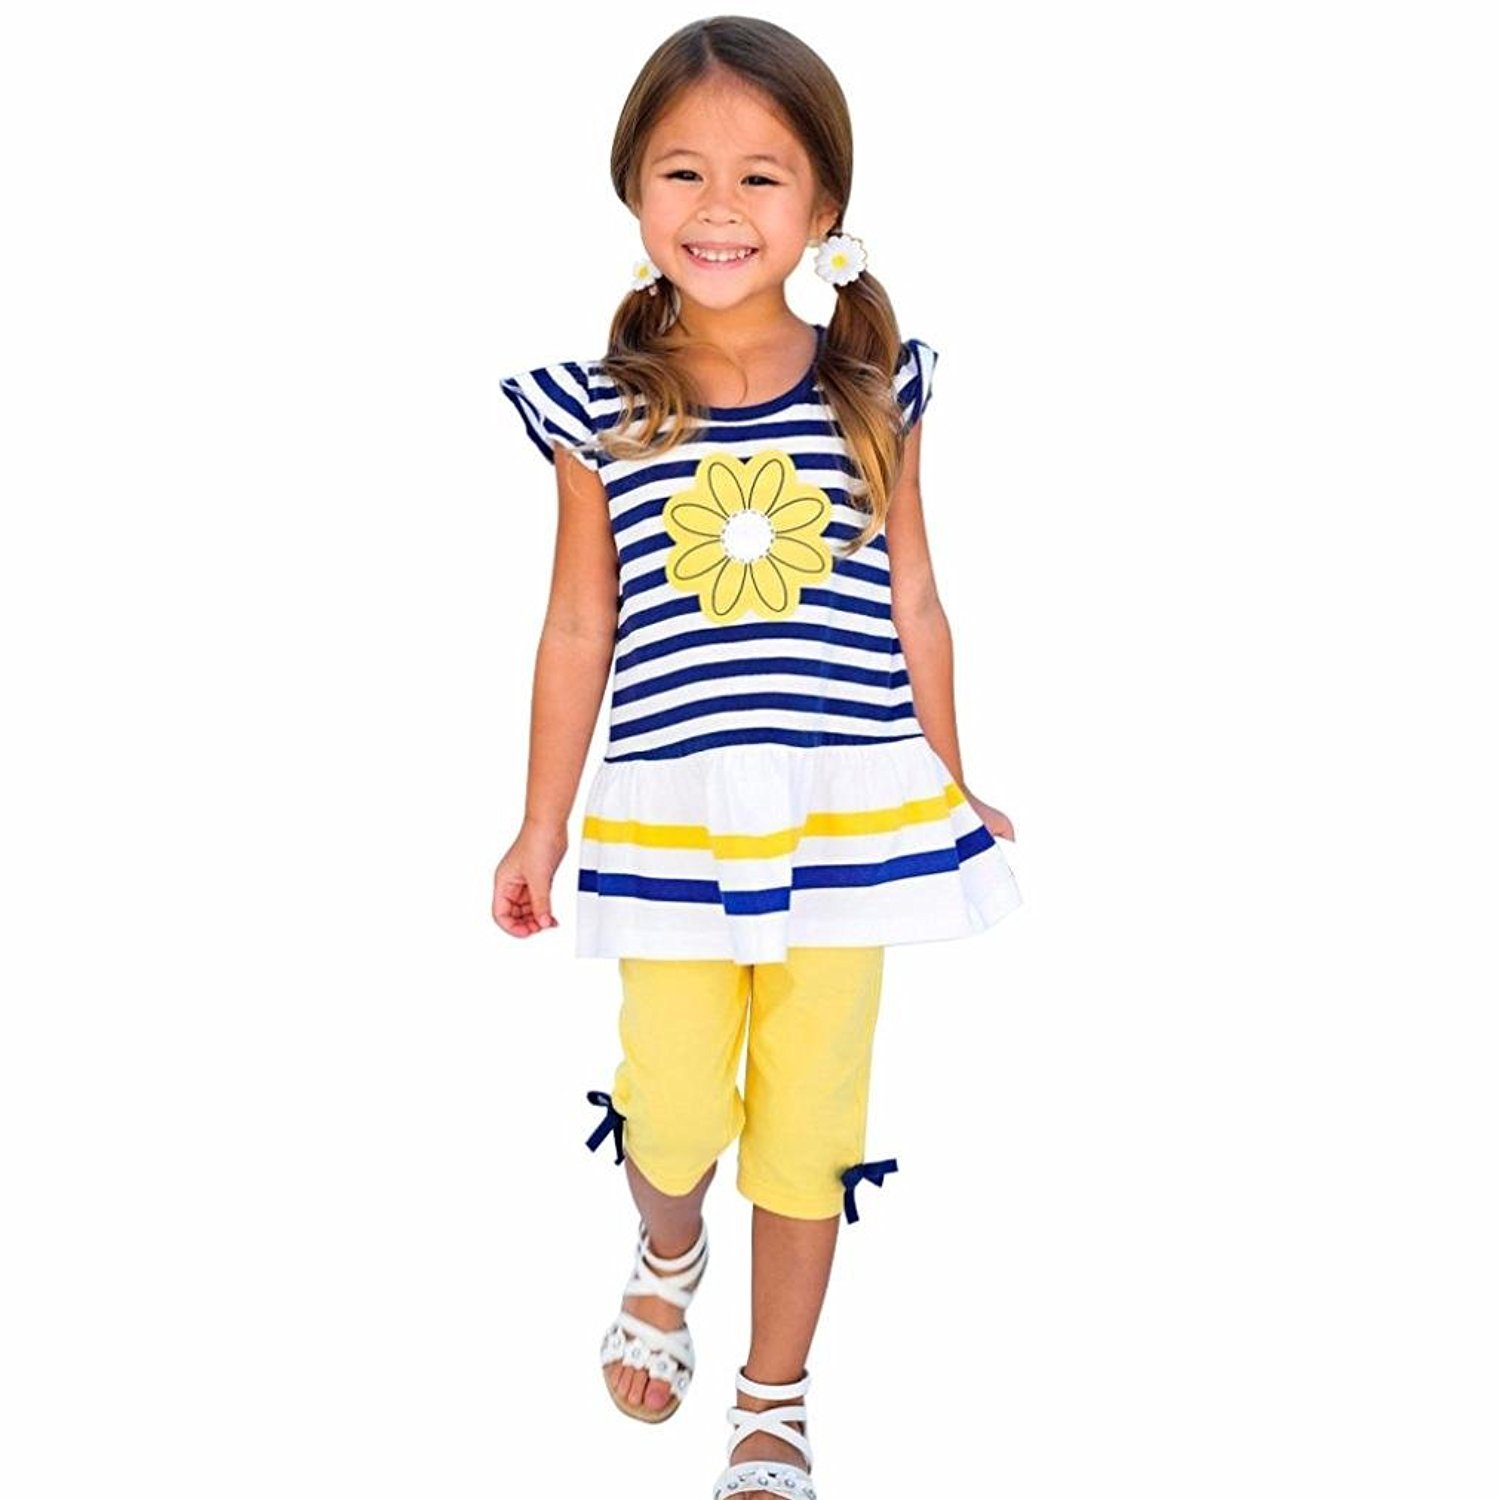 LUQUAN Kids Little Big Girls Clothes Daisy Flower Stripe Shirt Top Bow Pant Set 4-5 Years